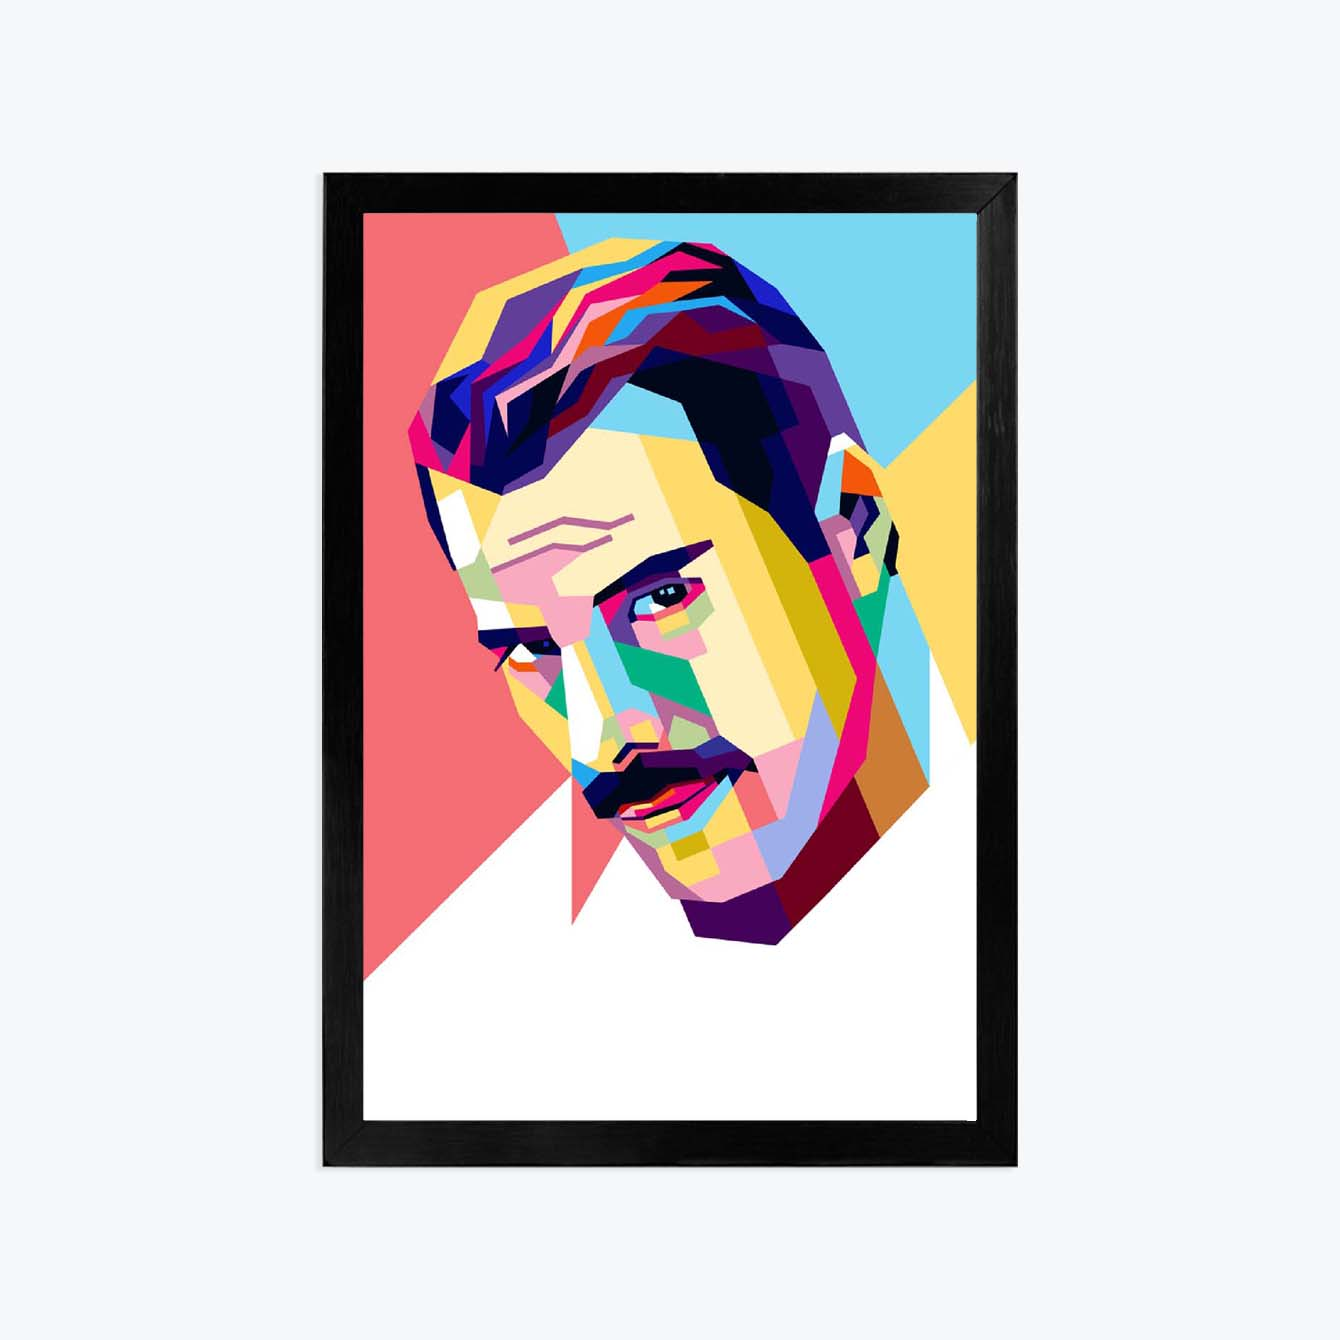 man Pop Art Glass Framed Posters & Artprints